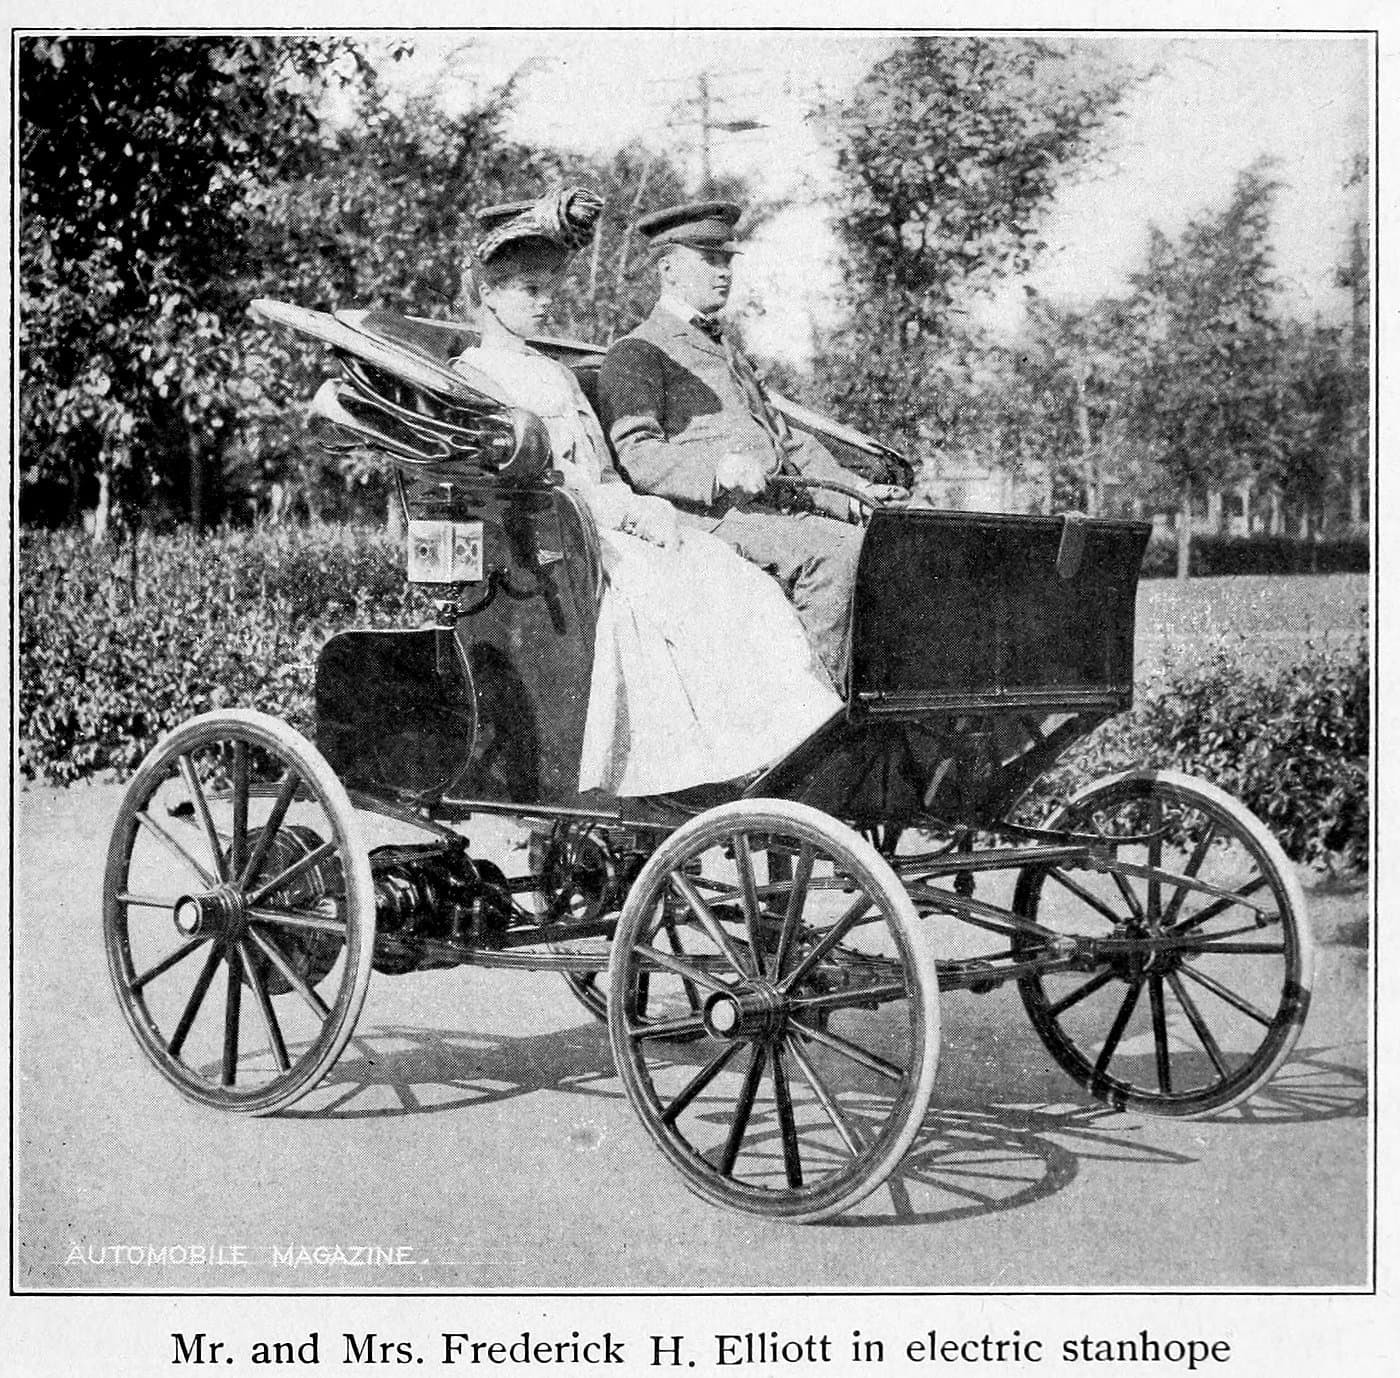 Mr. and Mrs. Frederick H. Elliott in electric stanhope (1902)